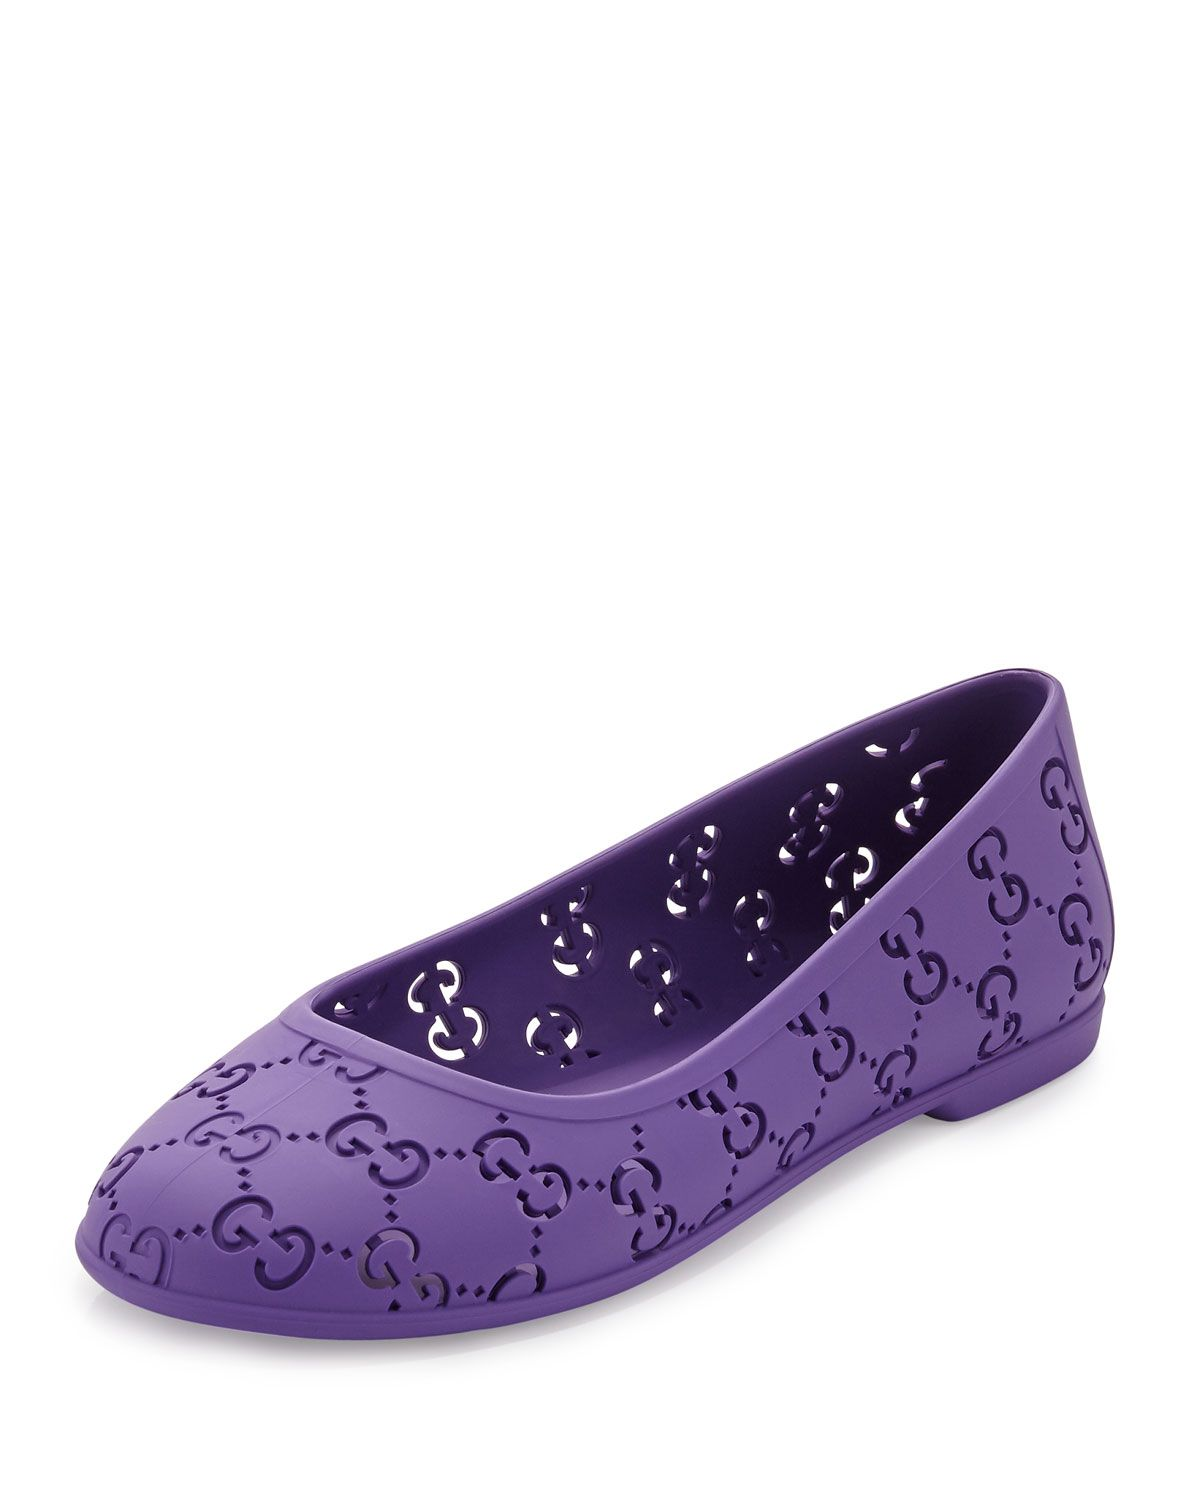 211830c93 Rubber GG Ballet Flat Youth